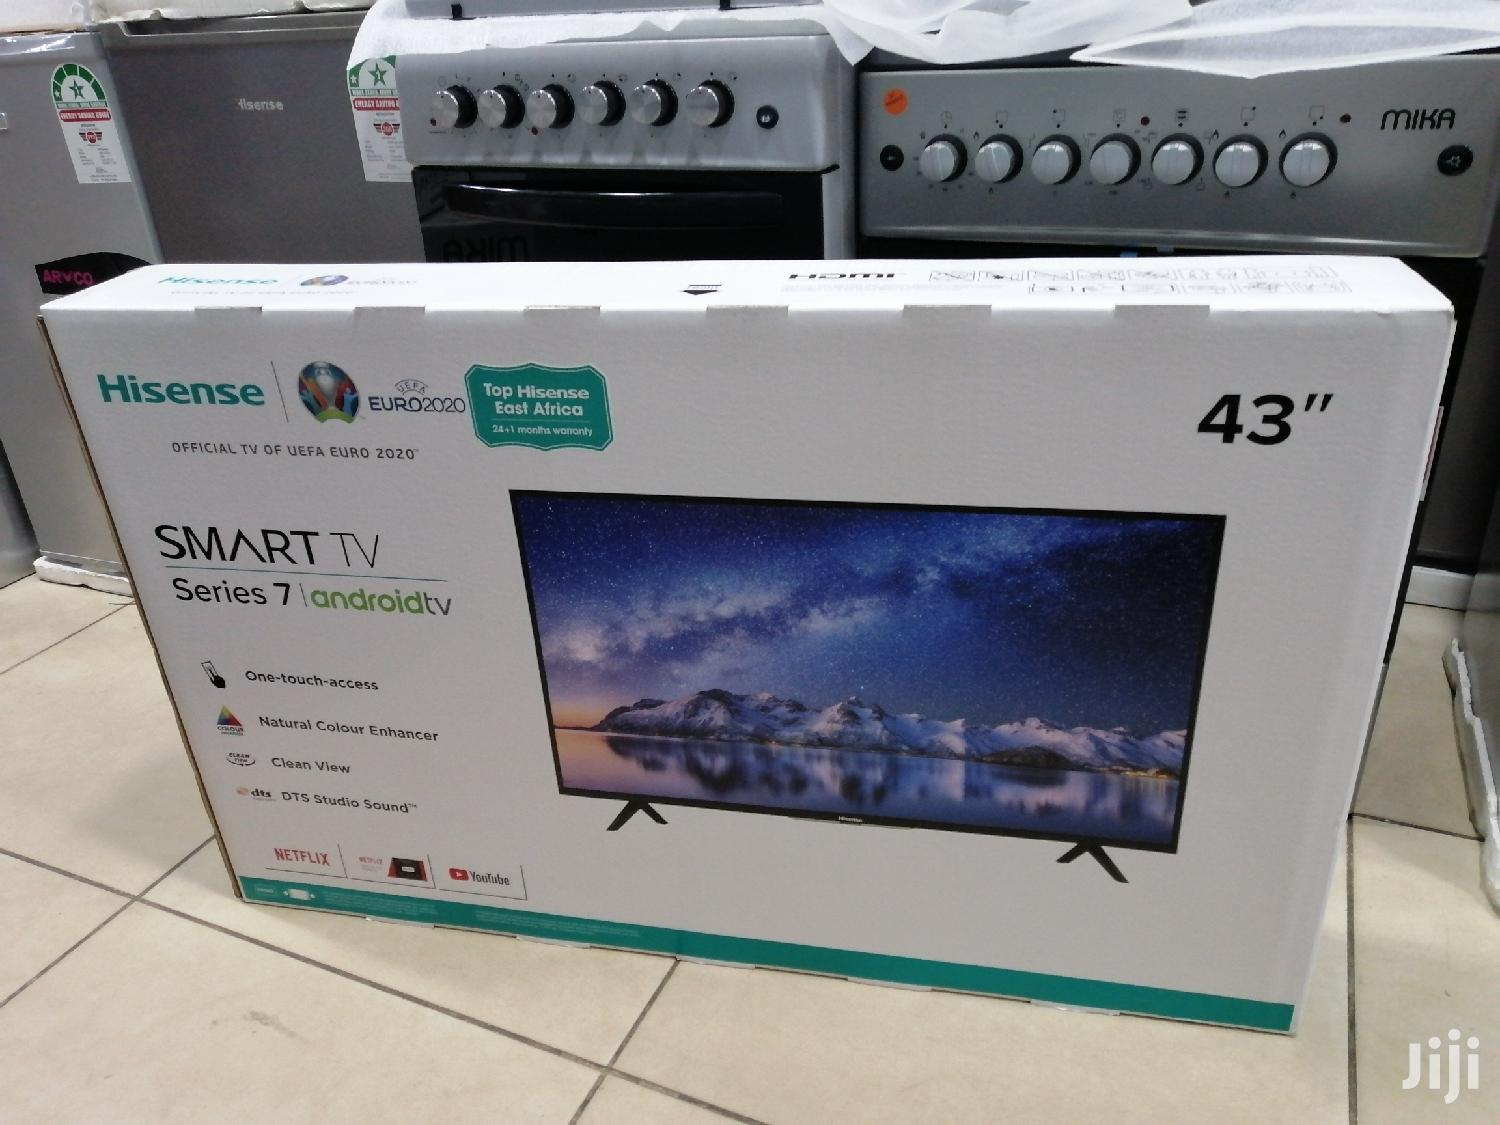 HISENSE SMART ANDROID Series 7 Tv 43 INCH